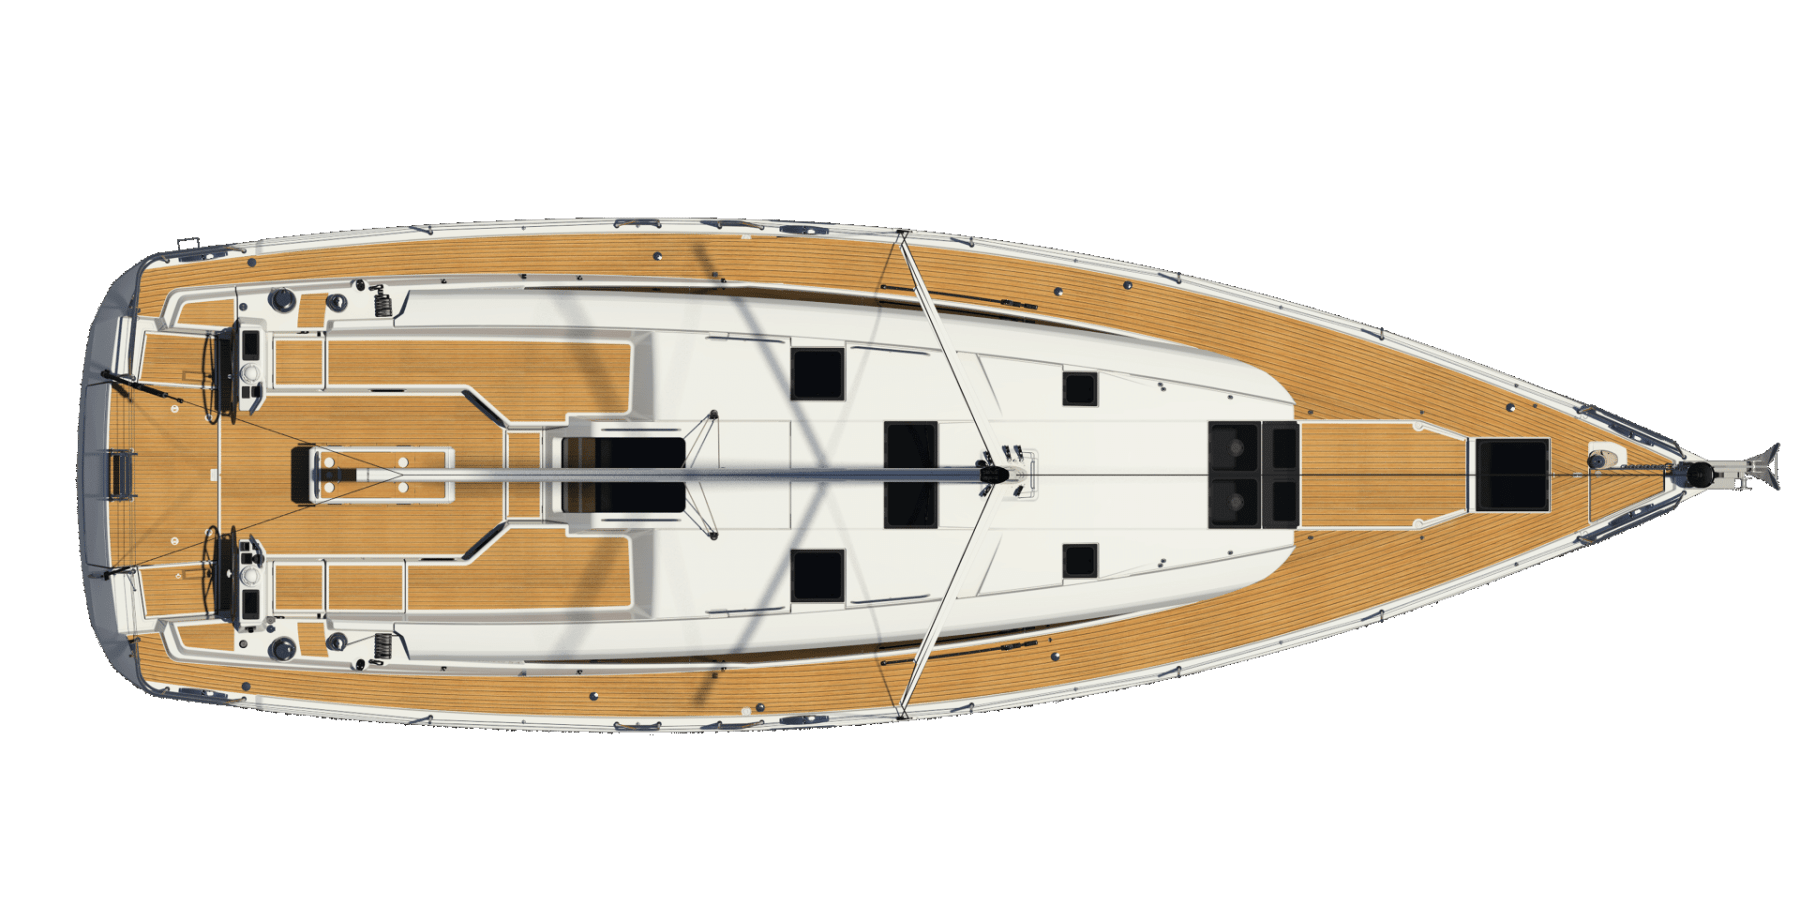 Jeanneau-54-layout-5-charter-ownership-yacht